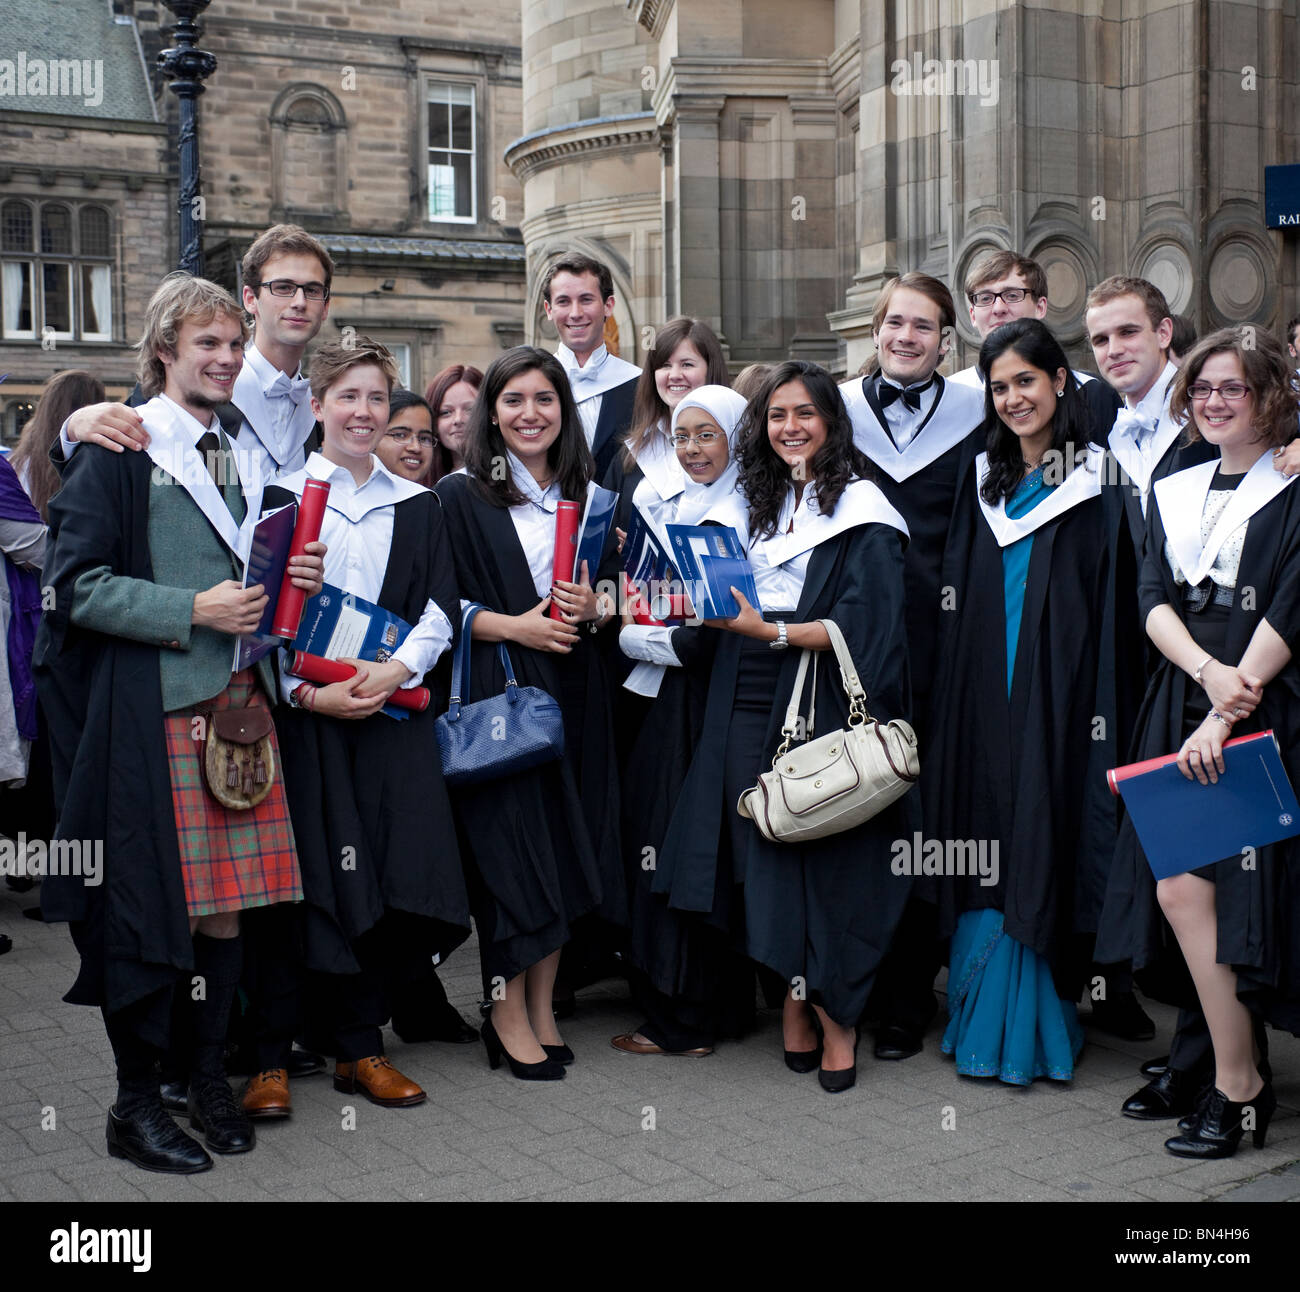 Group of multicultural female and male students graduating from Edinburgh University, Scotland, UK, Europe - Stock Image